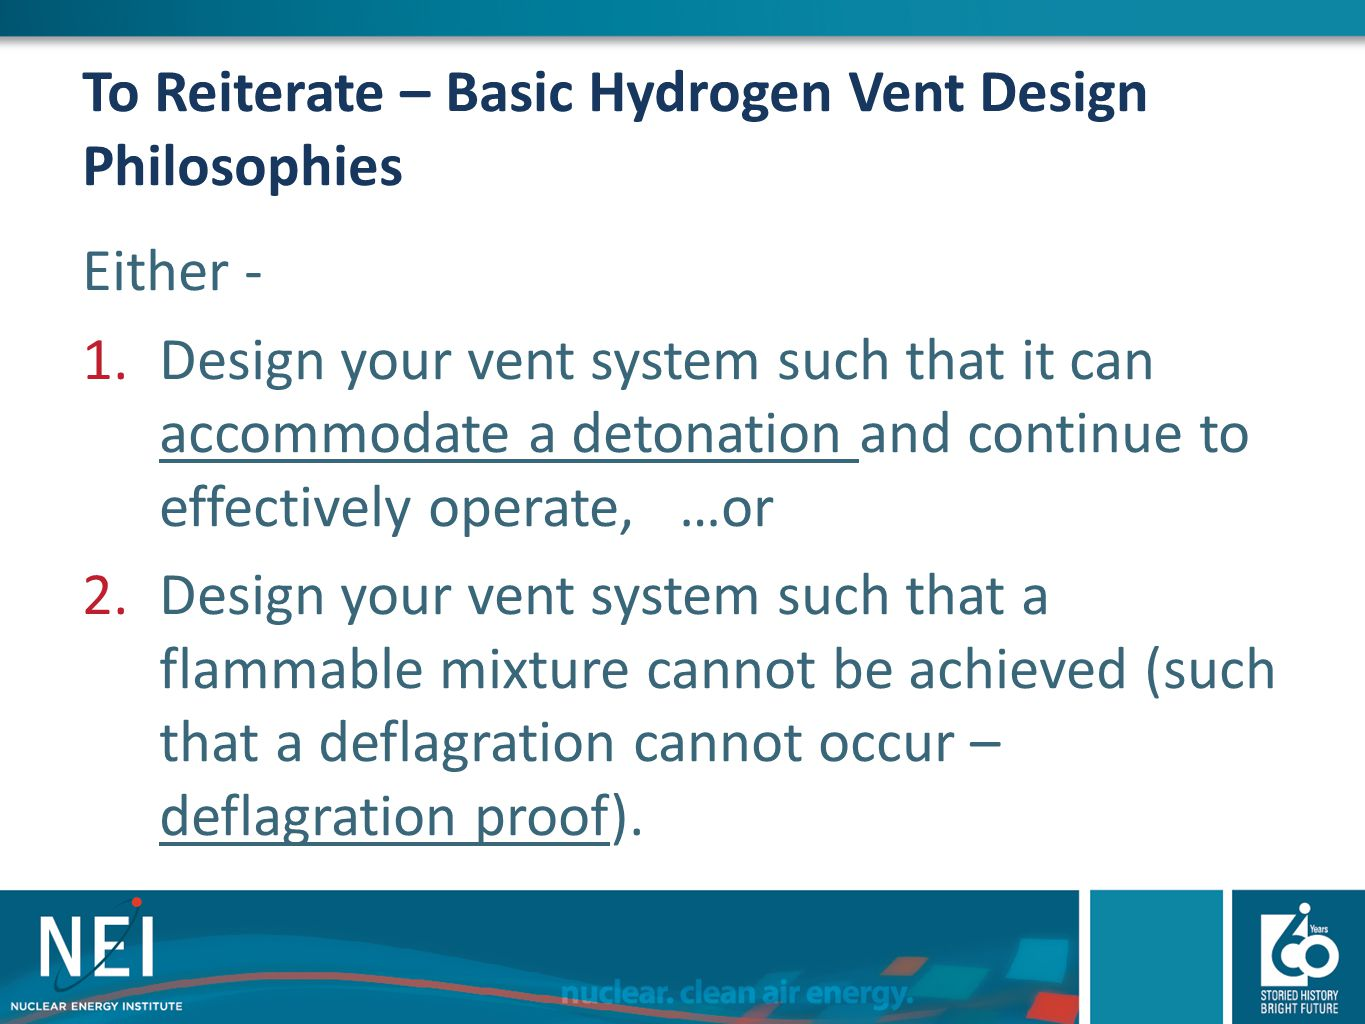 To Reiterate – Basic Hydrogen Vent Design Philosophies